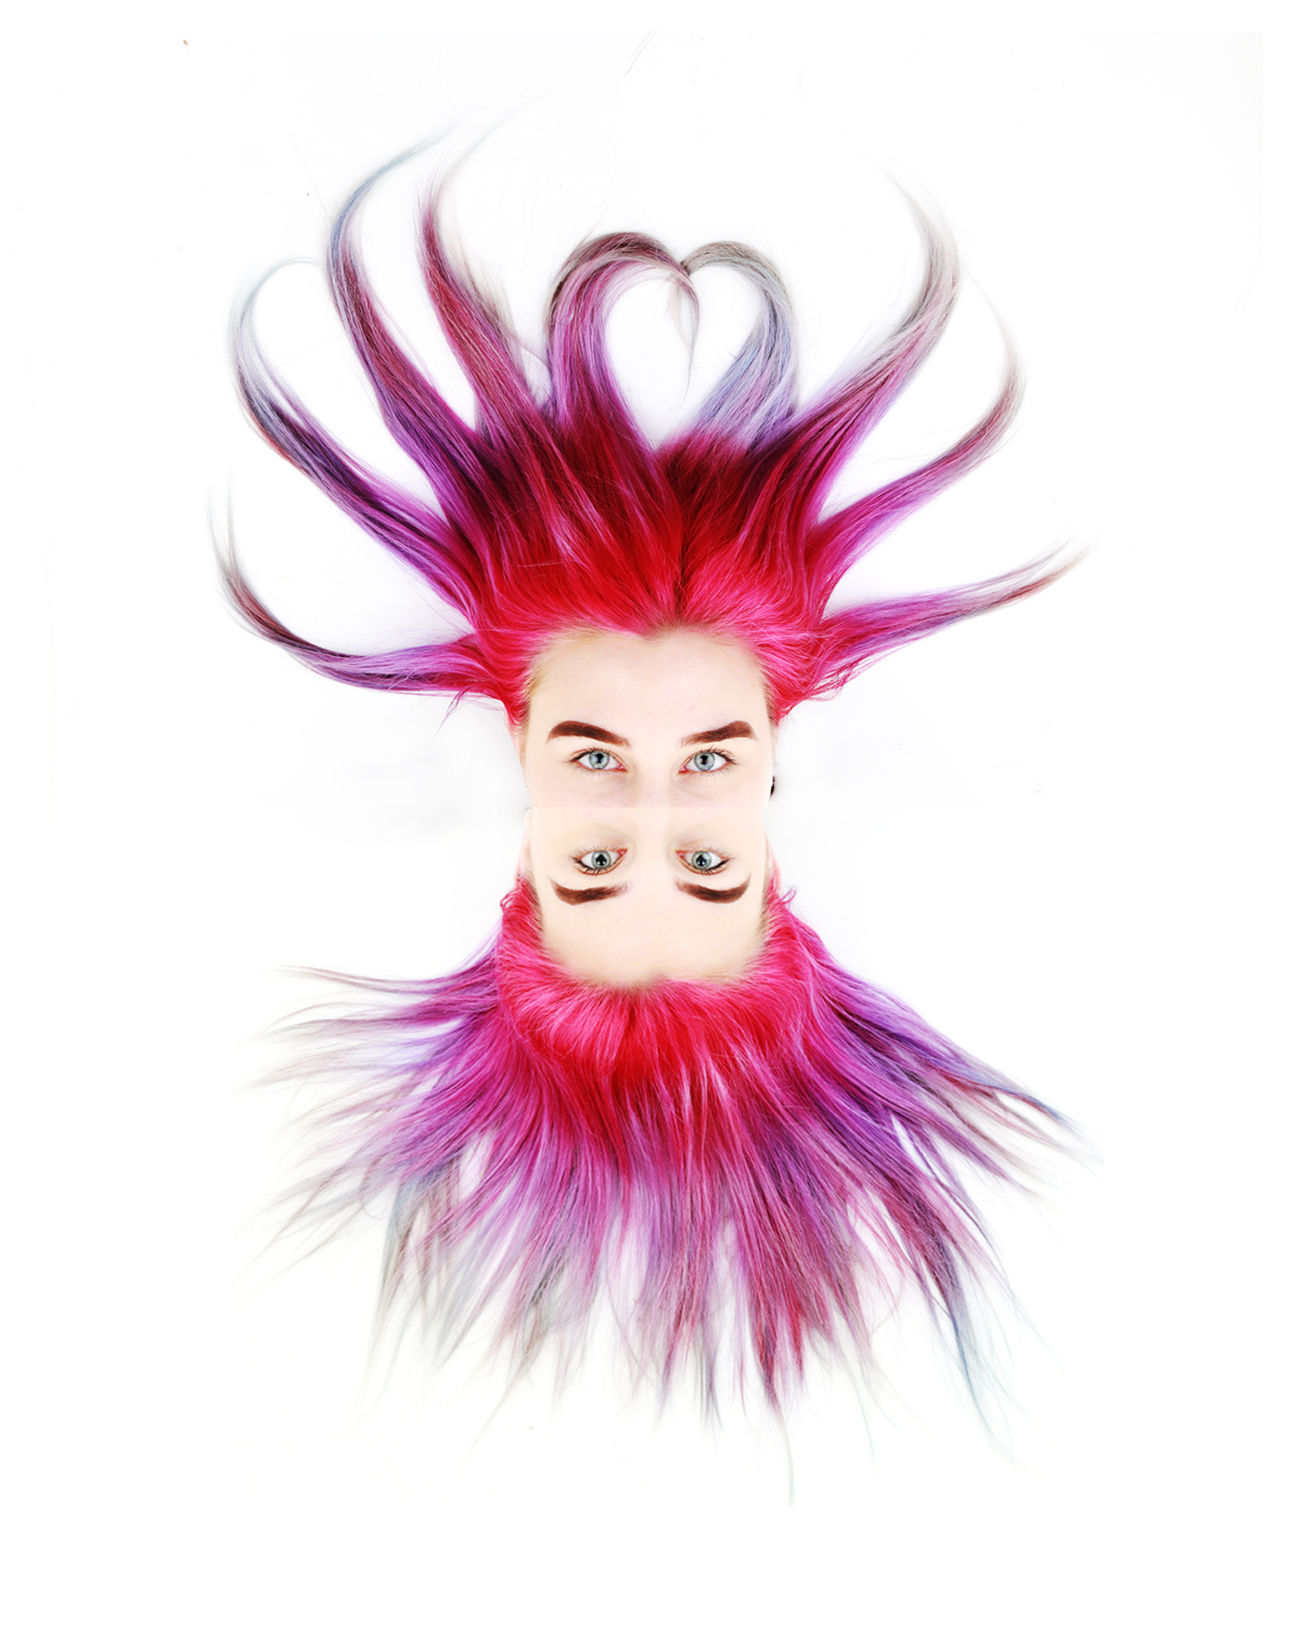 Hair Octopus Beautiful People Beautiful Woman Beauty Fashion Fashion Glamour Hair Make-up One Person One Woman Only Only Women People Pink Color Portrait Red Reflection Studio Surrealism Symmetry White Background Women Young Adult